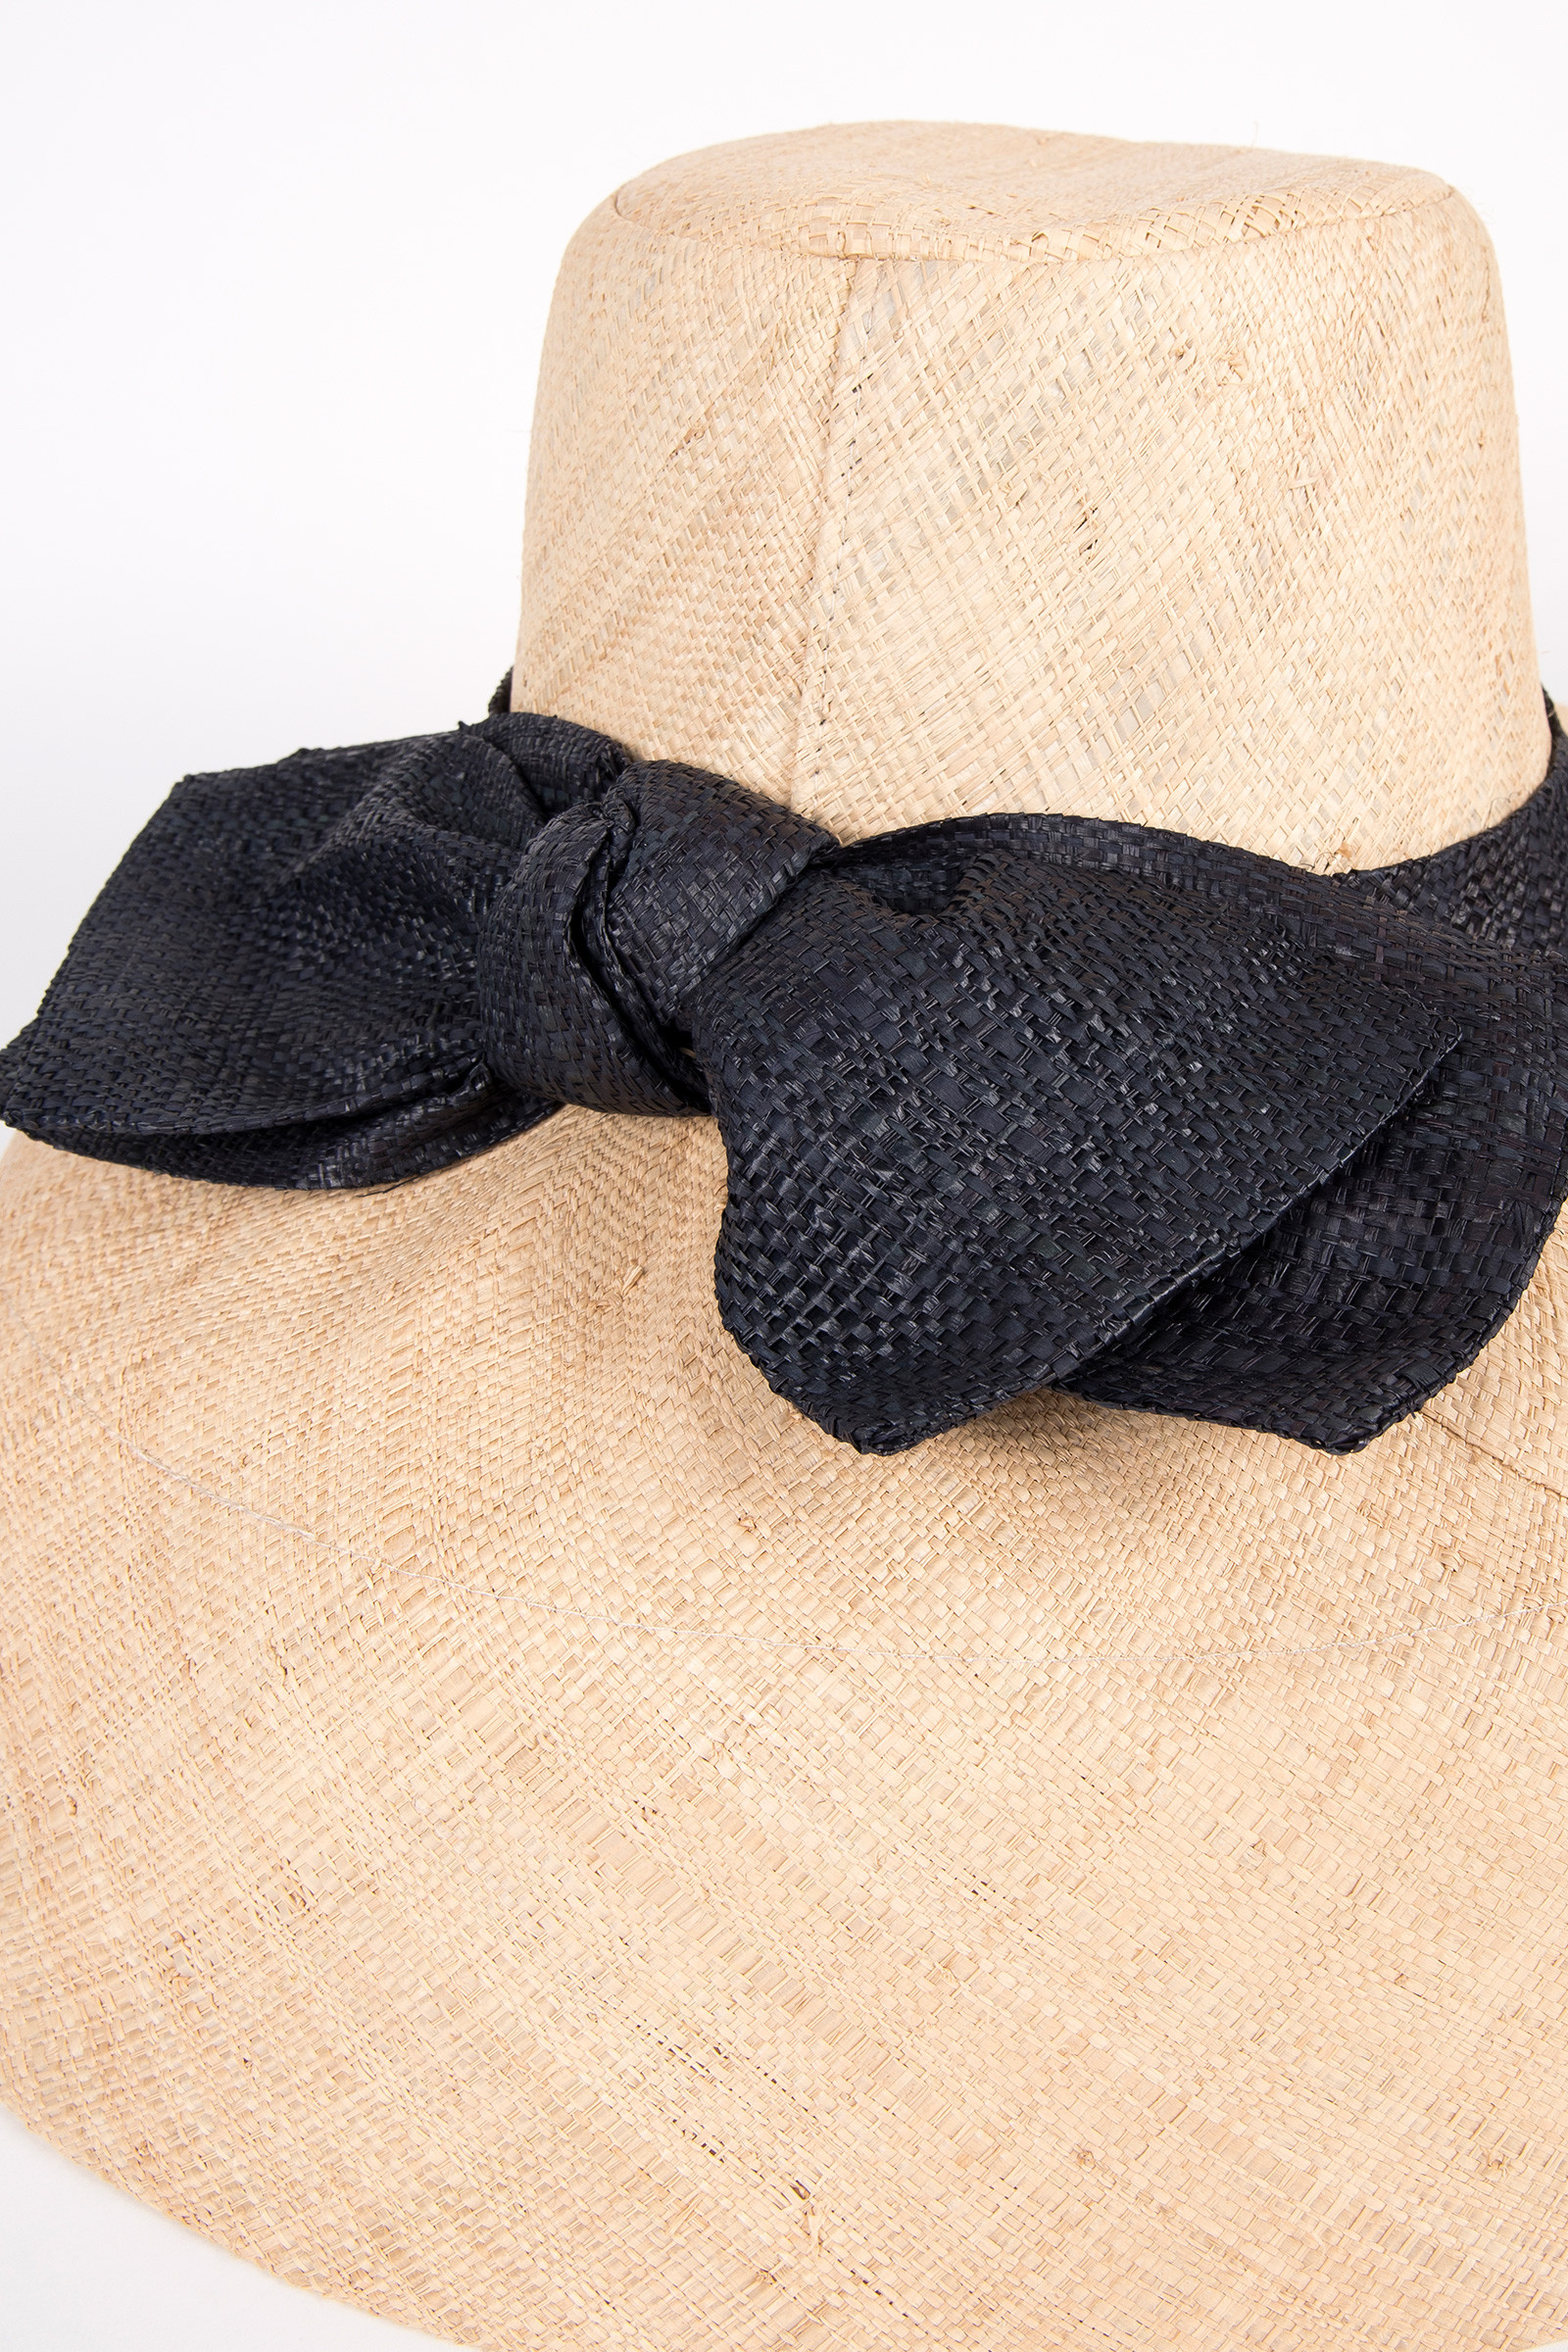 Raffia Hat with Black Bow detail